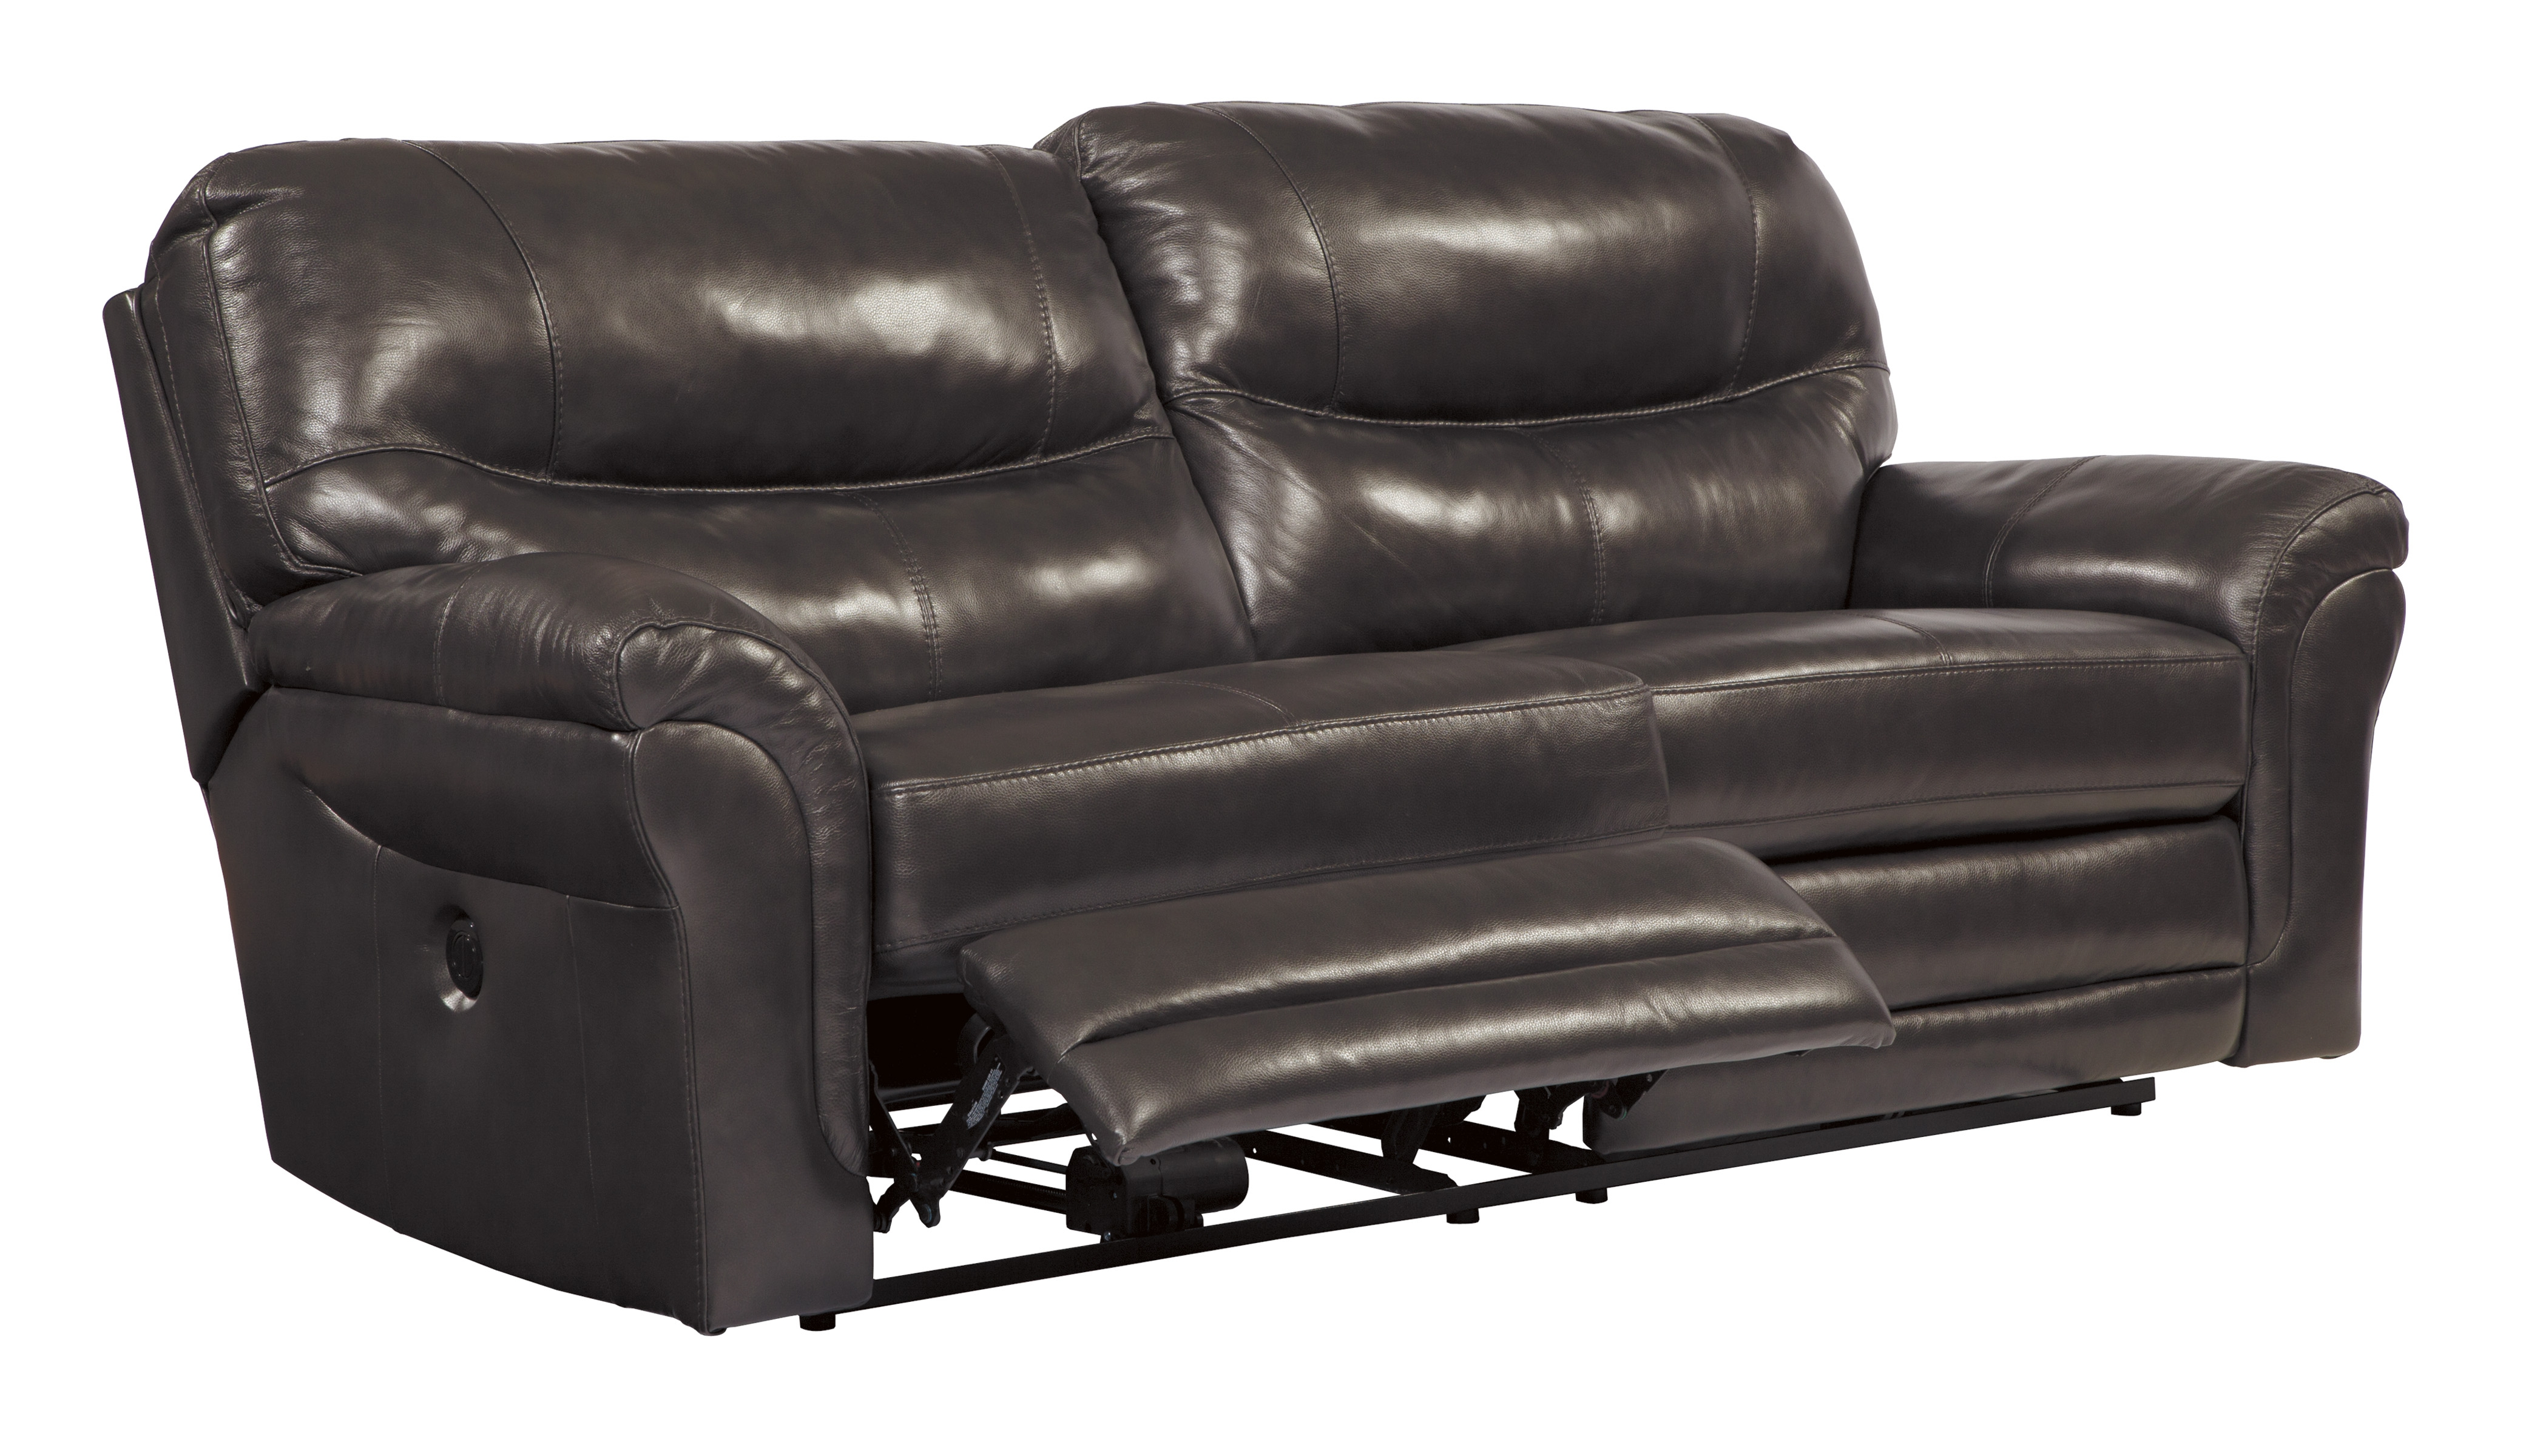 Banetonville transitional metal grain leather living room for Ashley encore grain chaise